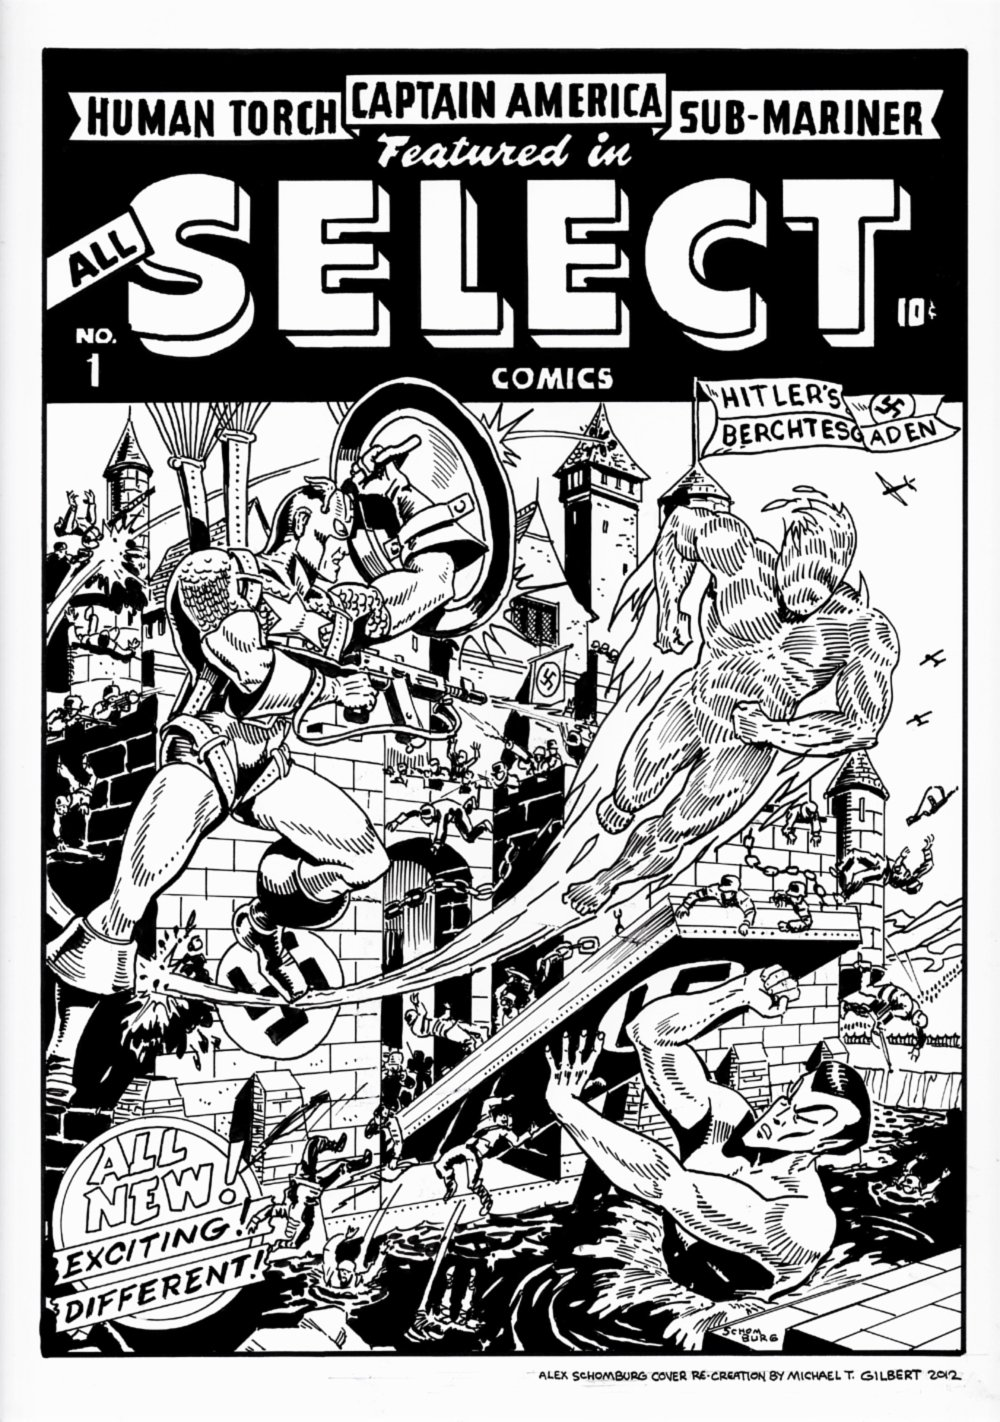 All Select #1 Cover Recreation (Large Art - 2012)